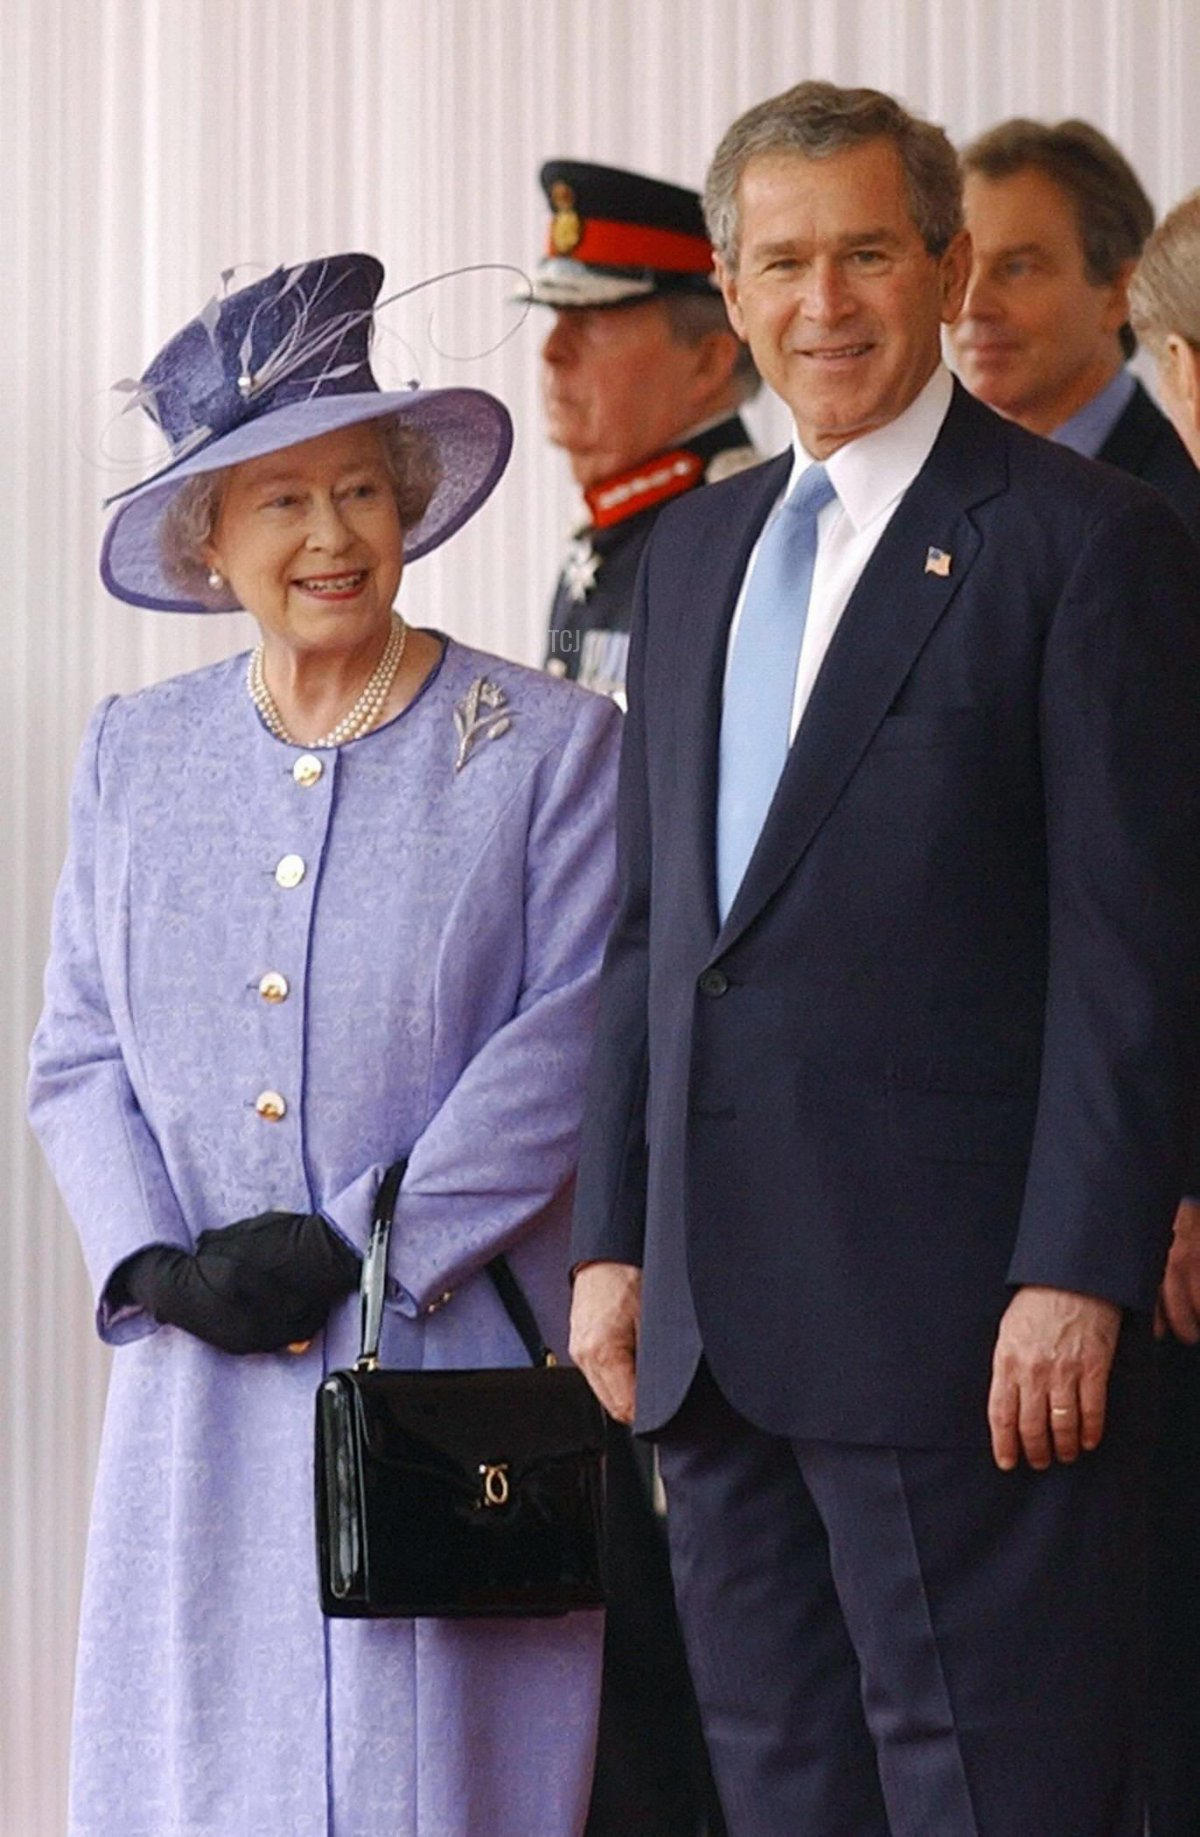 US President George W. Bush (C) welcomed to the United Kingdom by Queen Elizabeth II and Prime Minister Tony Blair, 19 November 2003 amid tight security at Buckingham Palace. Traditional British pomp and ceremony, including a 41-gun salute, was laid on for start of the historic state visit. The President and Mrs Bush stayed overnight at the Palace before the official welcome ceremony